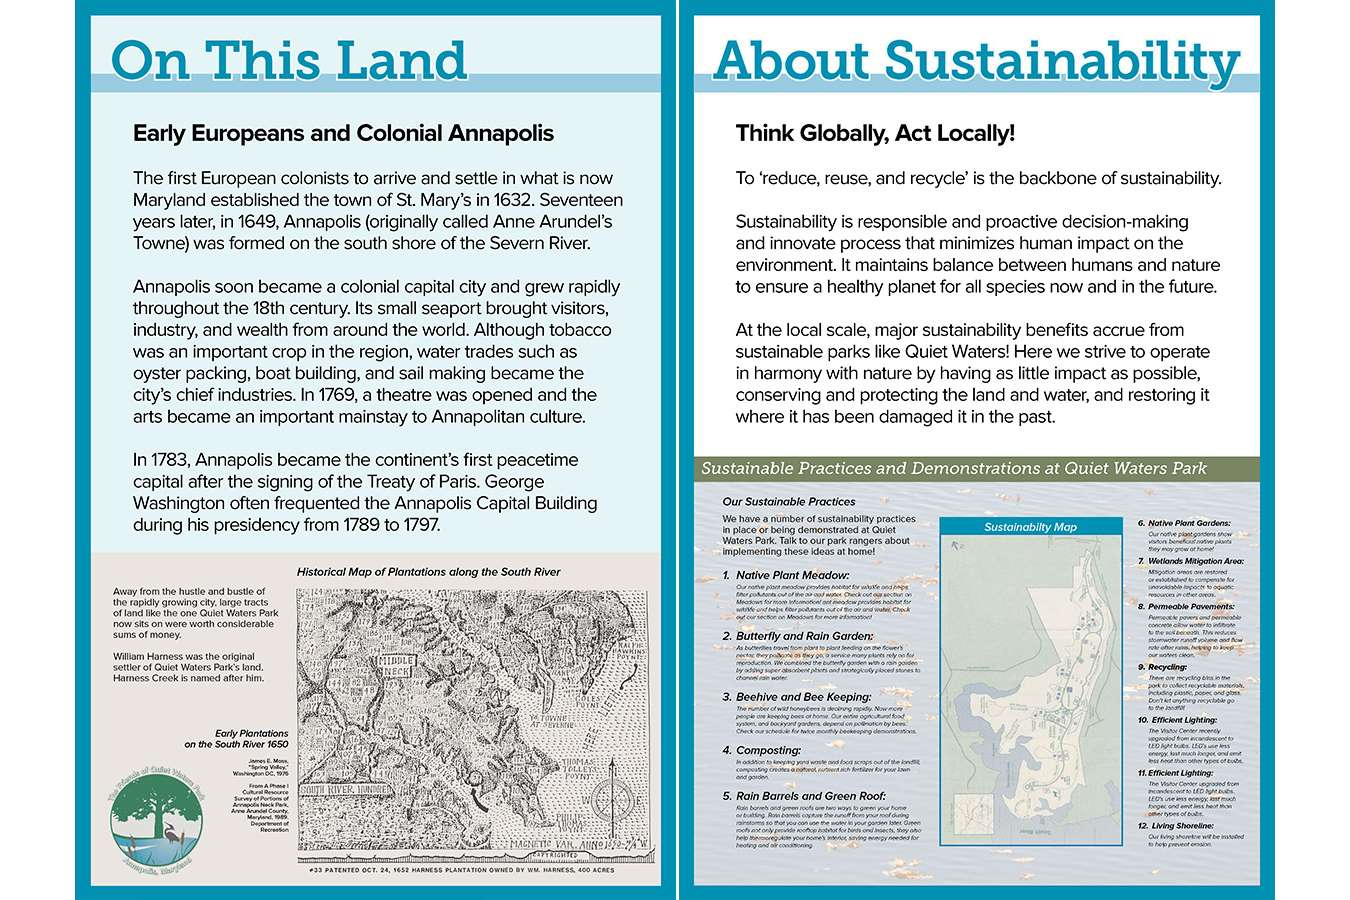 10c GM 6+7 web : Sustainability panel describes and locates all the positive environmental activities in the park